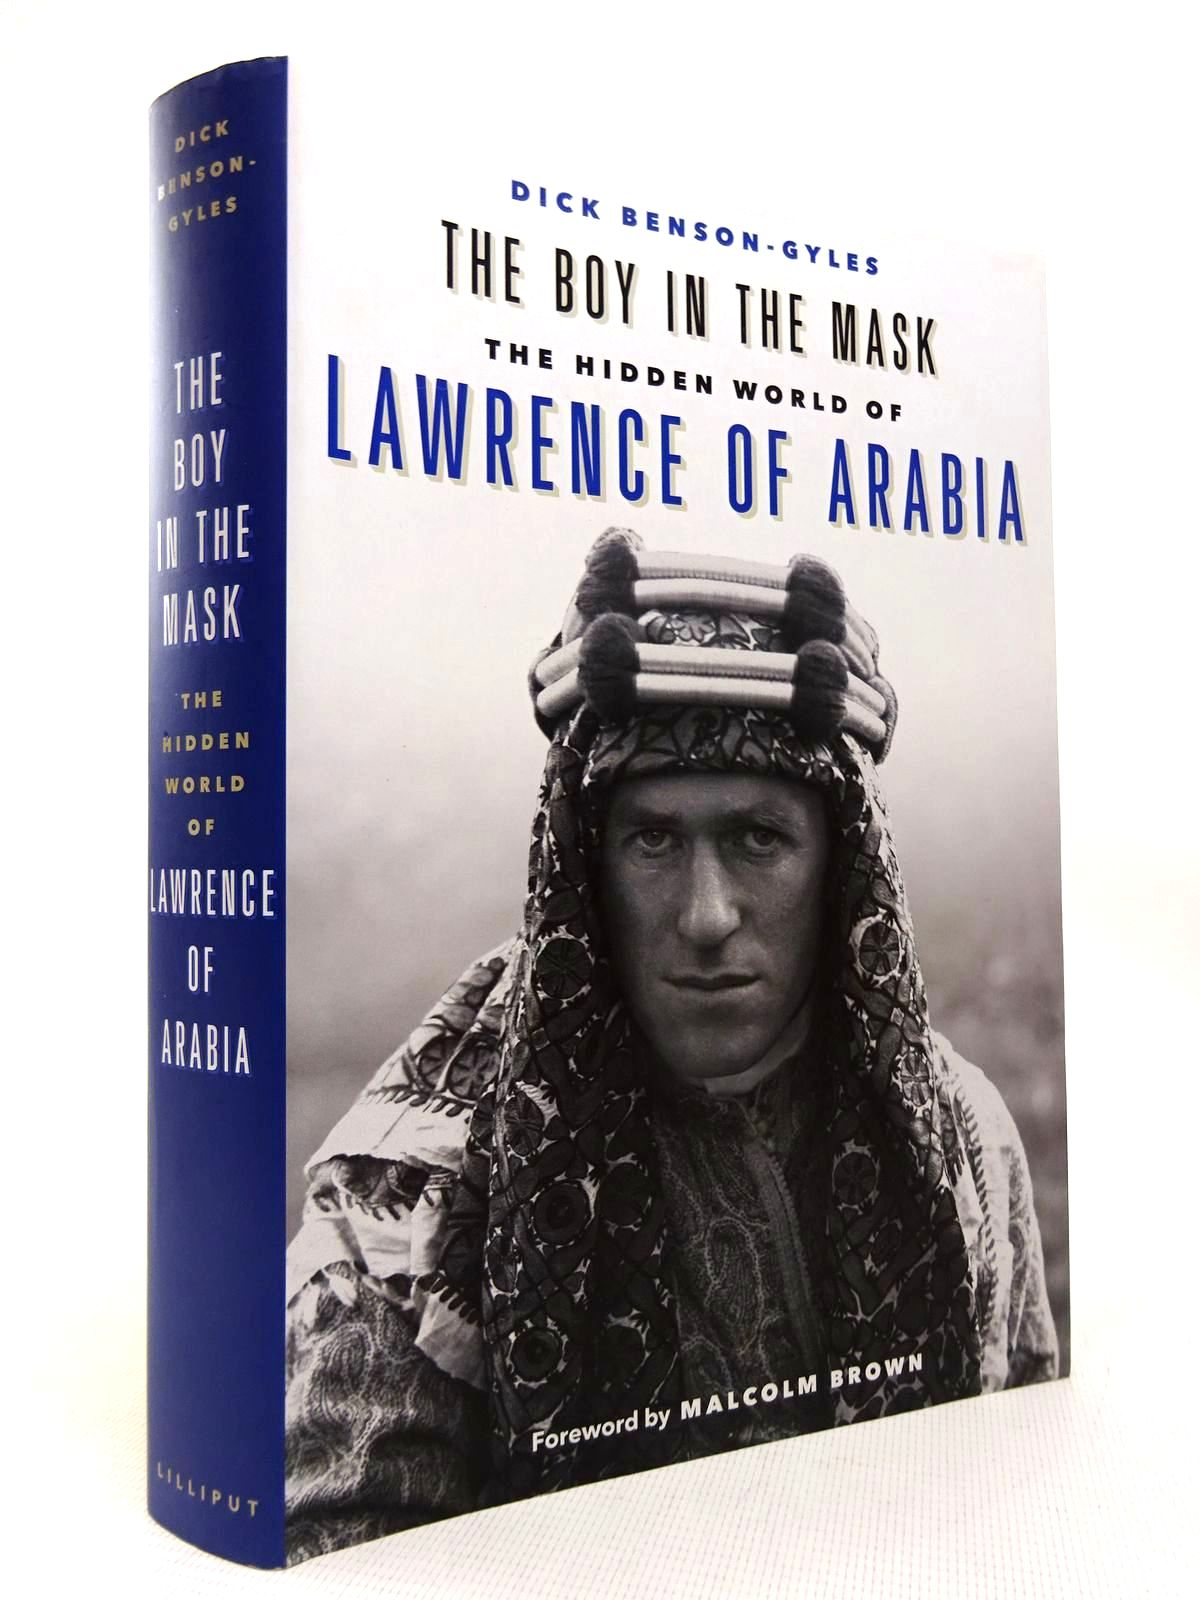 Photo of THE BOY IN THE MASK: THE HIDDEN WORLD OF LAWRENCE OF ARABIA written by Benson-Gyles, Dick published by The Lilliput Press (STOCK CODE: 1816389)  for sale by Stella & Rose's Books